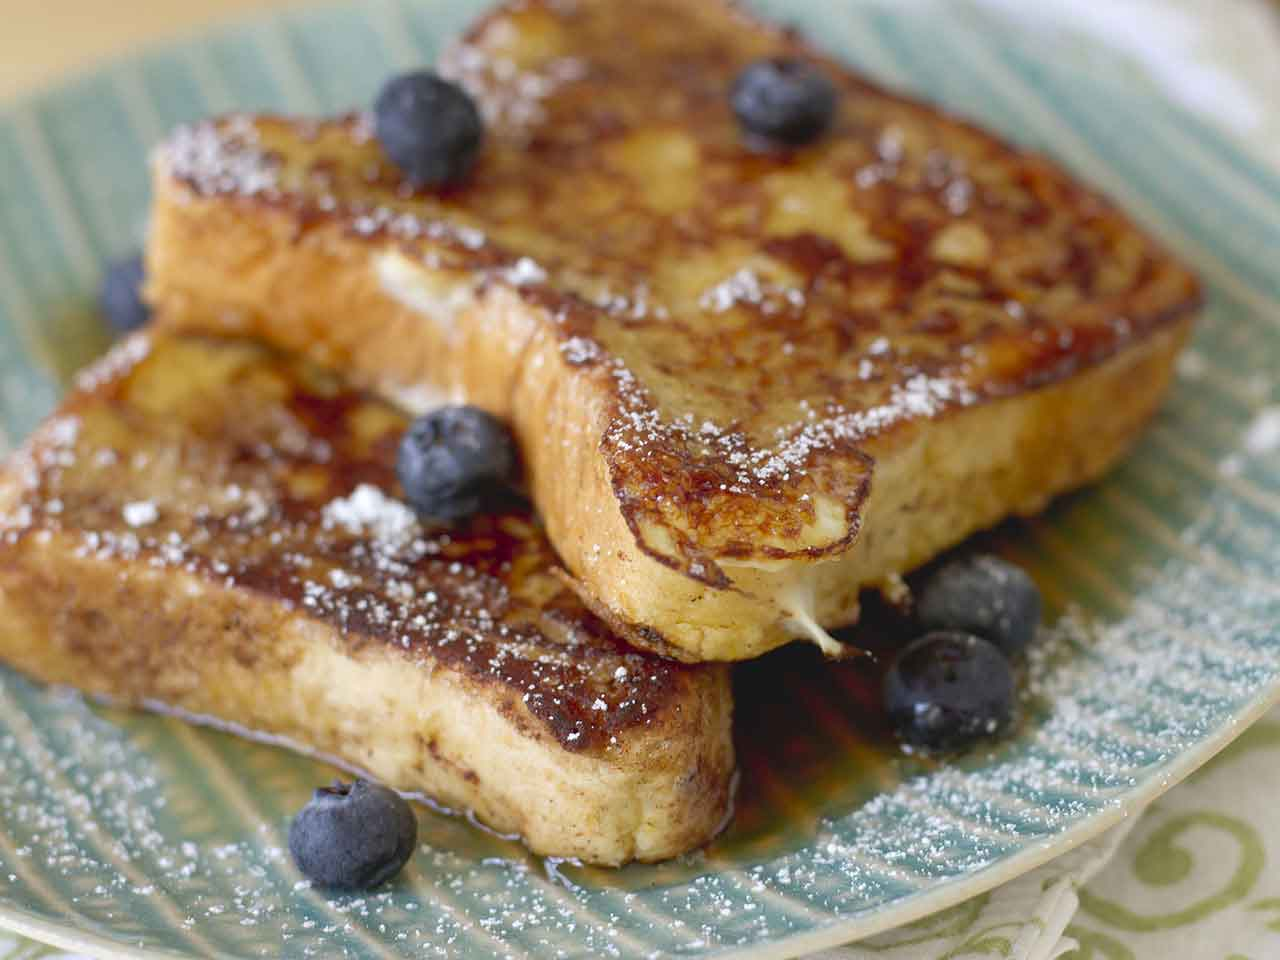 Two slices of French toast